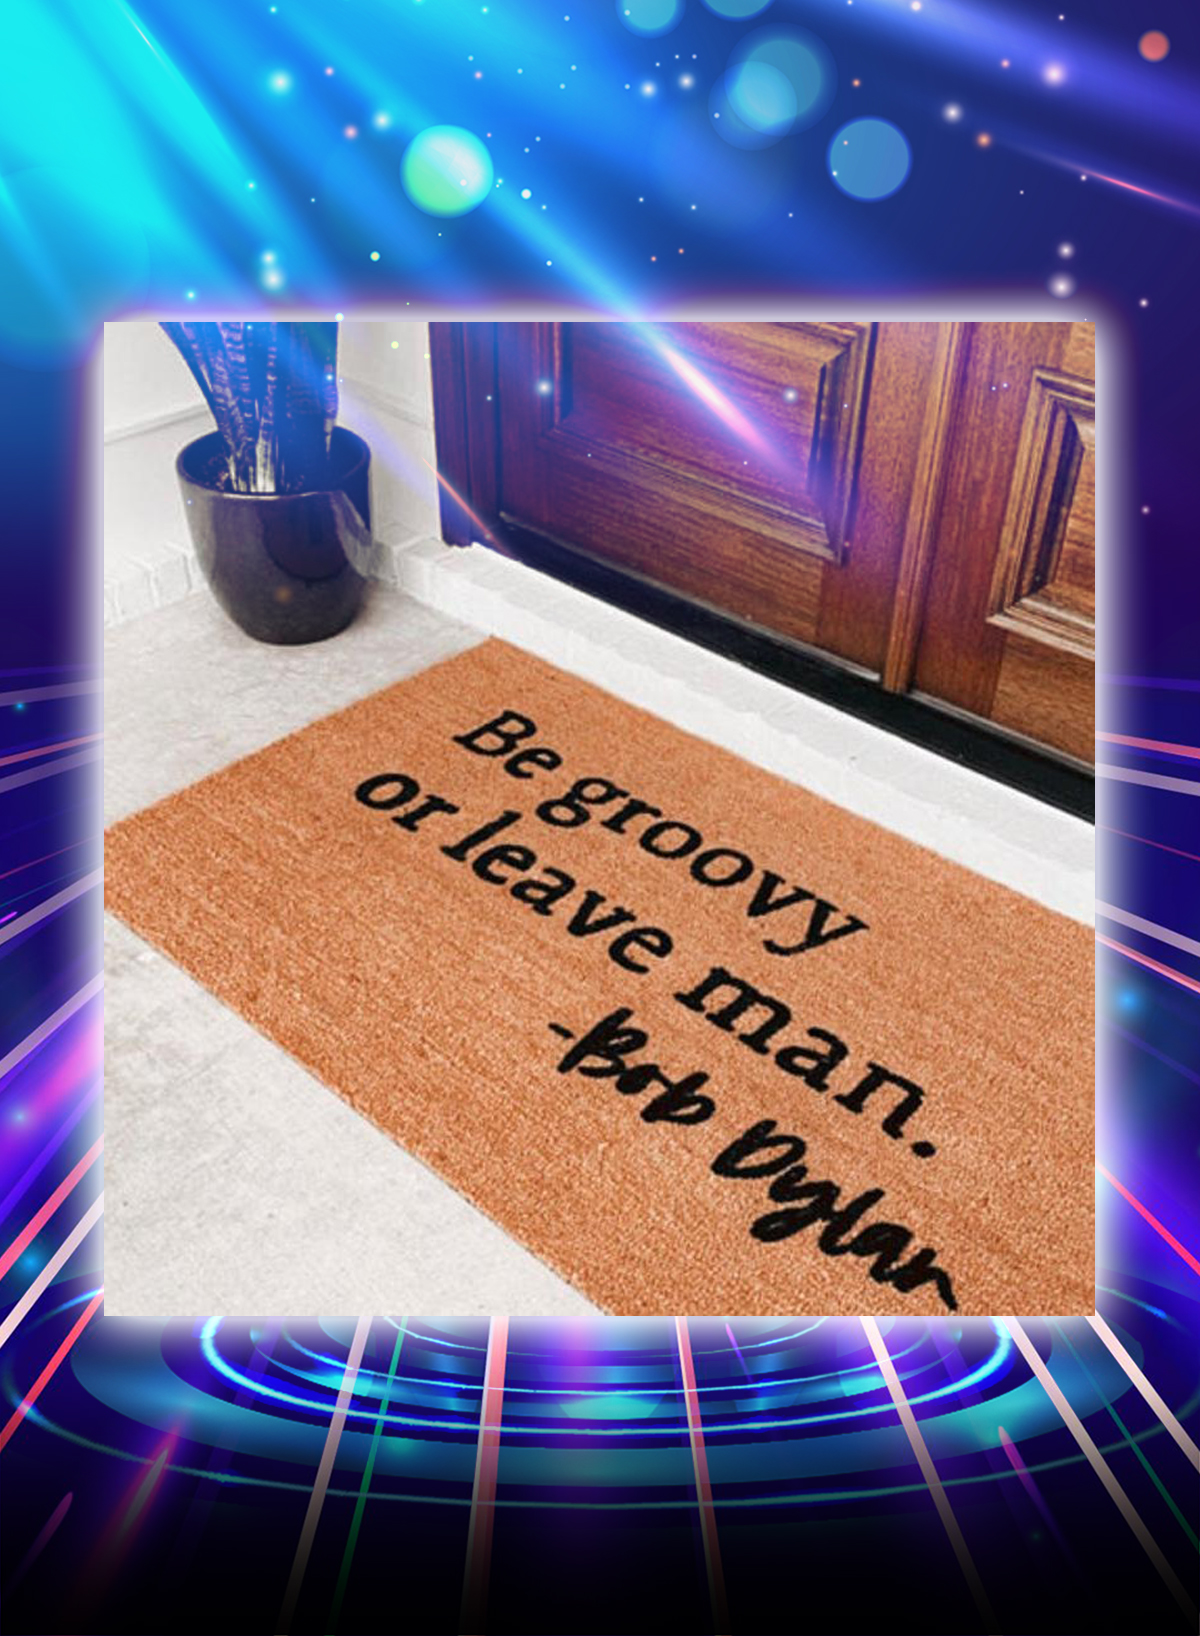 Be groovy or leave man Bob Dylan doormat - Picture 1